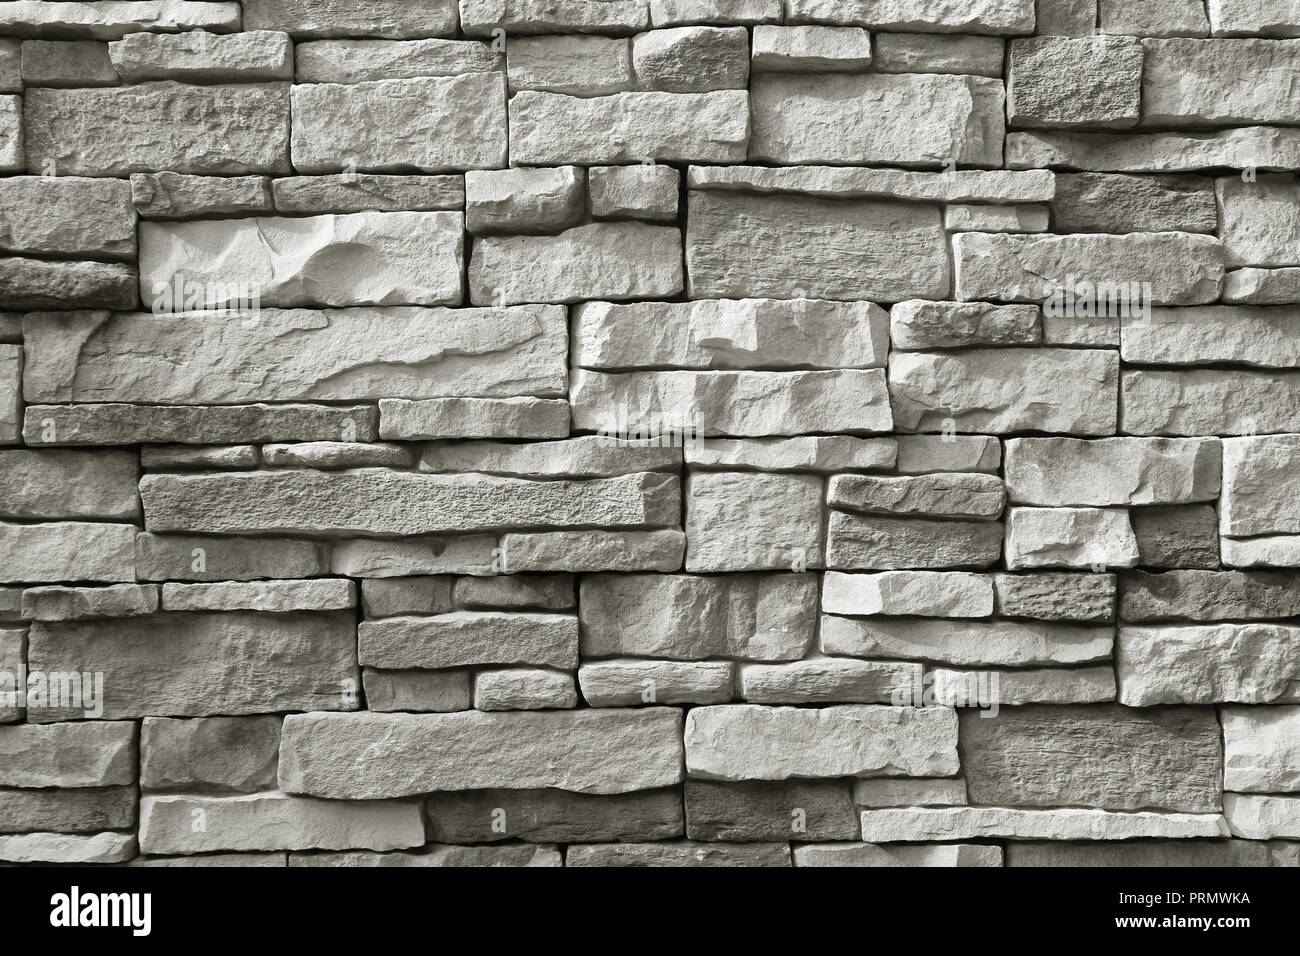 Front view of monotone grey rough stone wall for background or banner - Stock Image